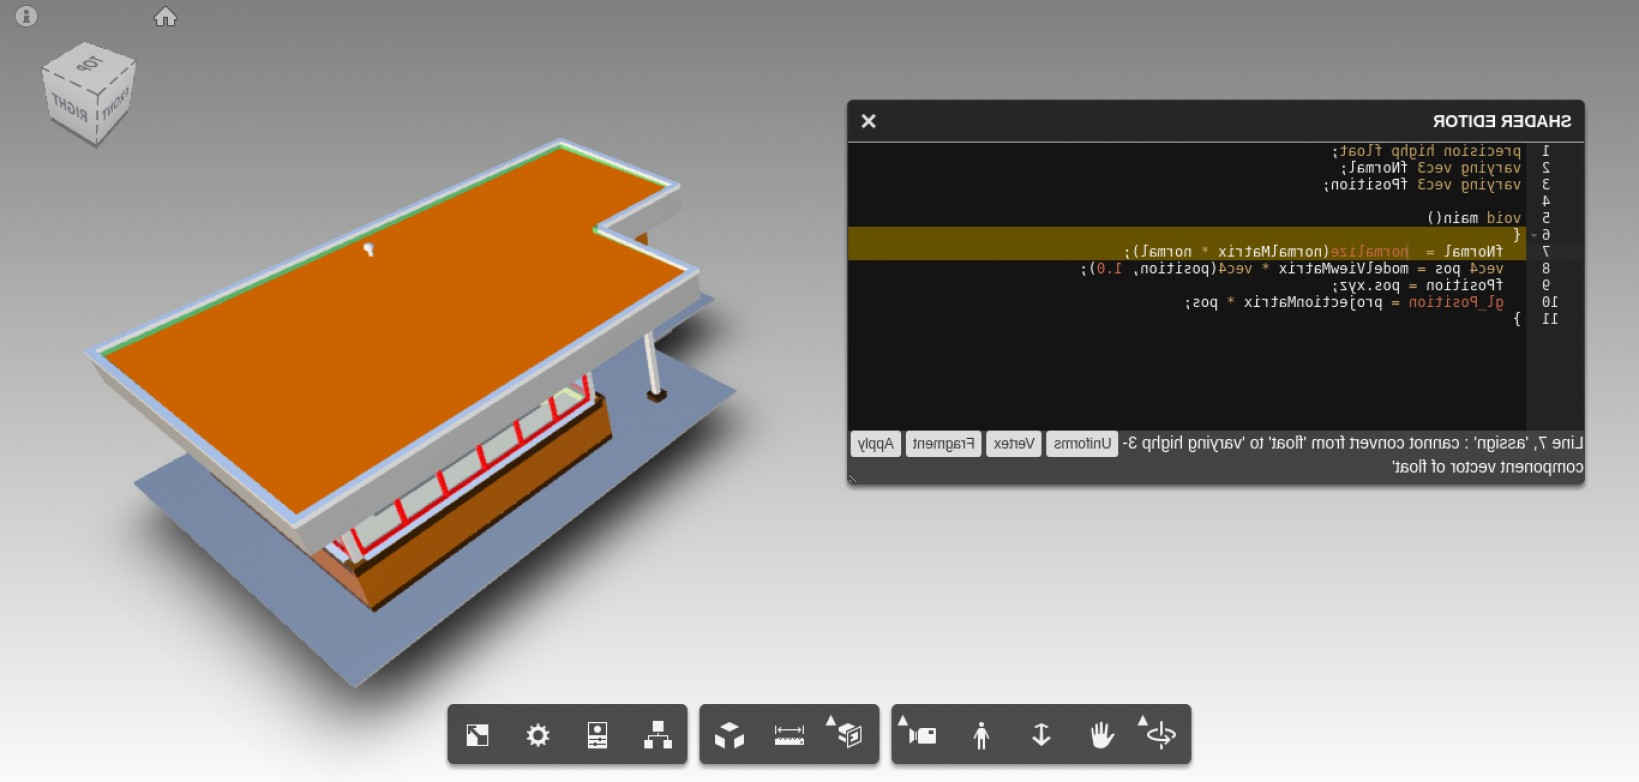 Vector Component Of XYZ: Ace Editor For Threejs Shadermaterials In The Forge Viewer